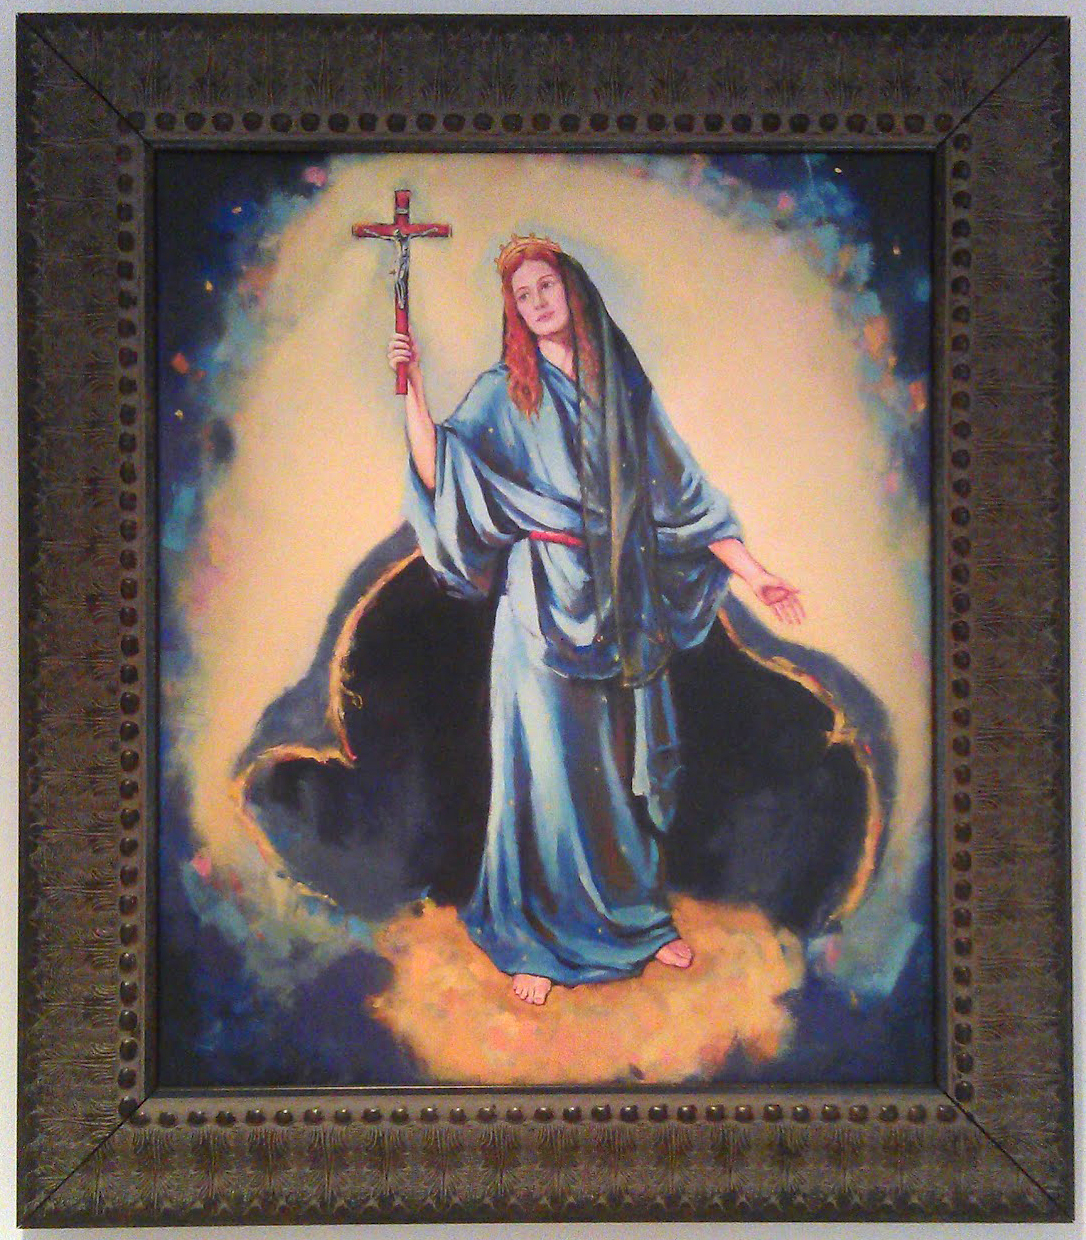 Image from https://ourladyofhope.net/gallery/parish-hall-art/